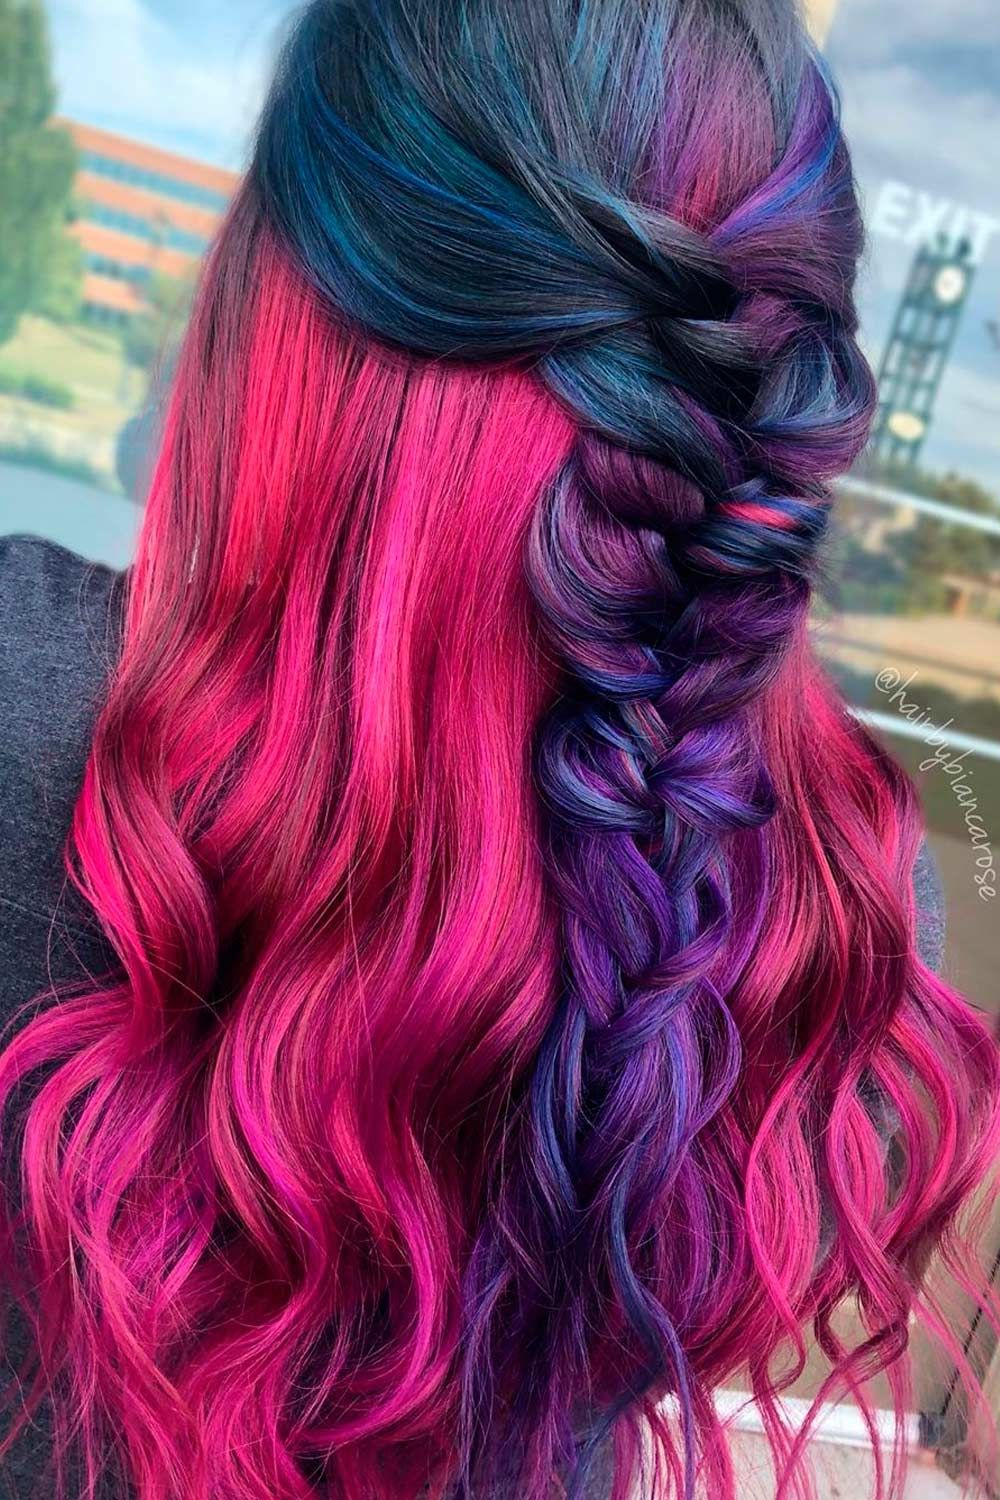 Galaxy Hair Braided Styles